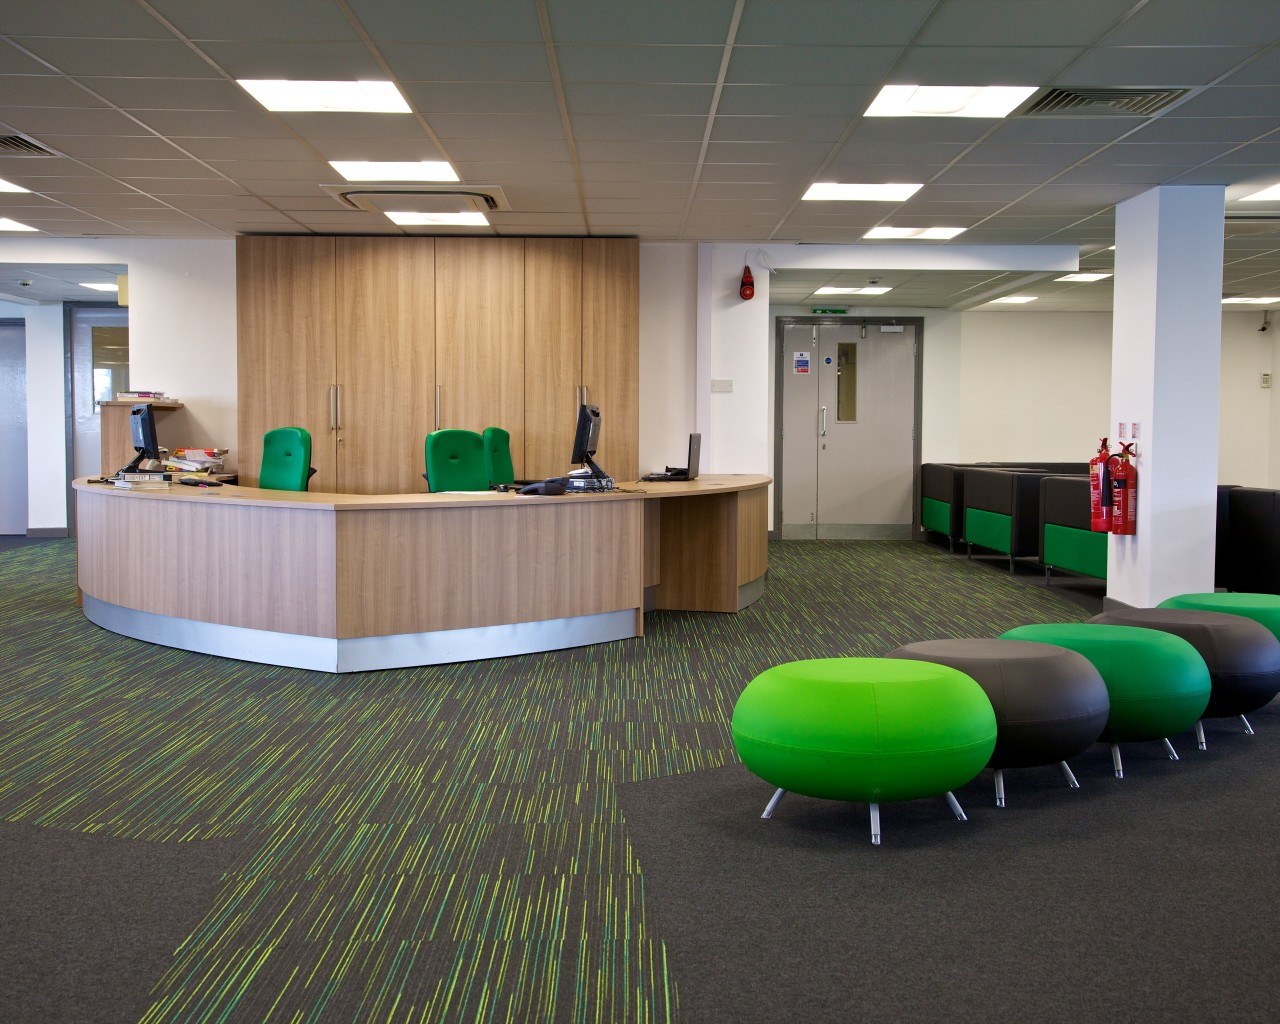 Office interior design consultancy bolton manchester for Office design guidelines uk